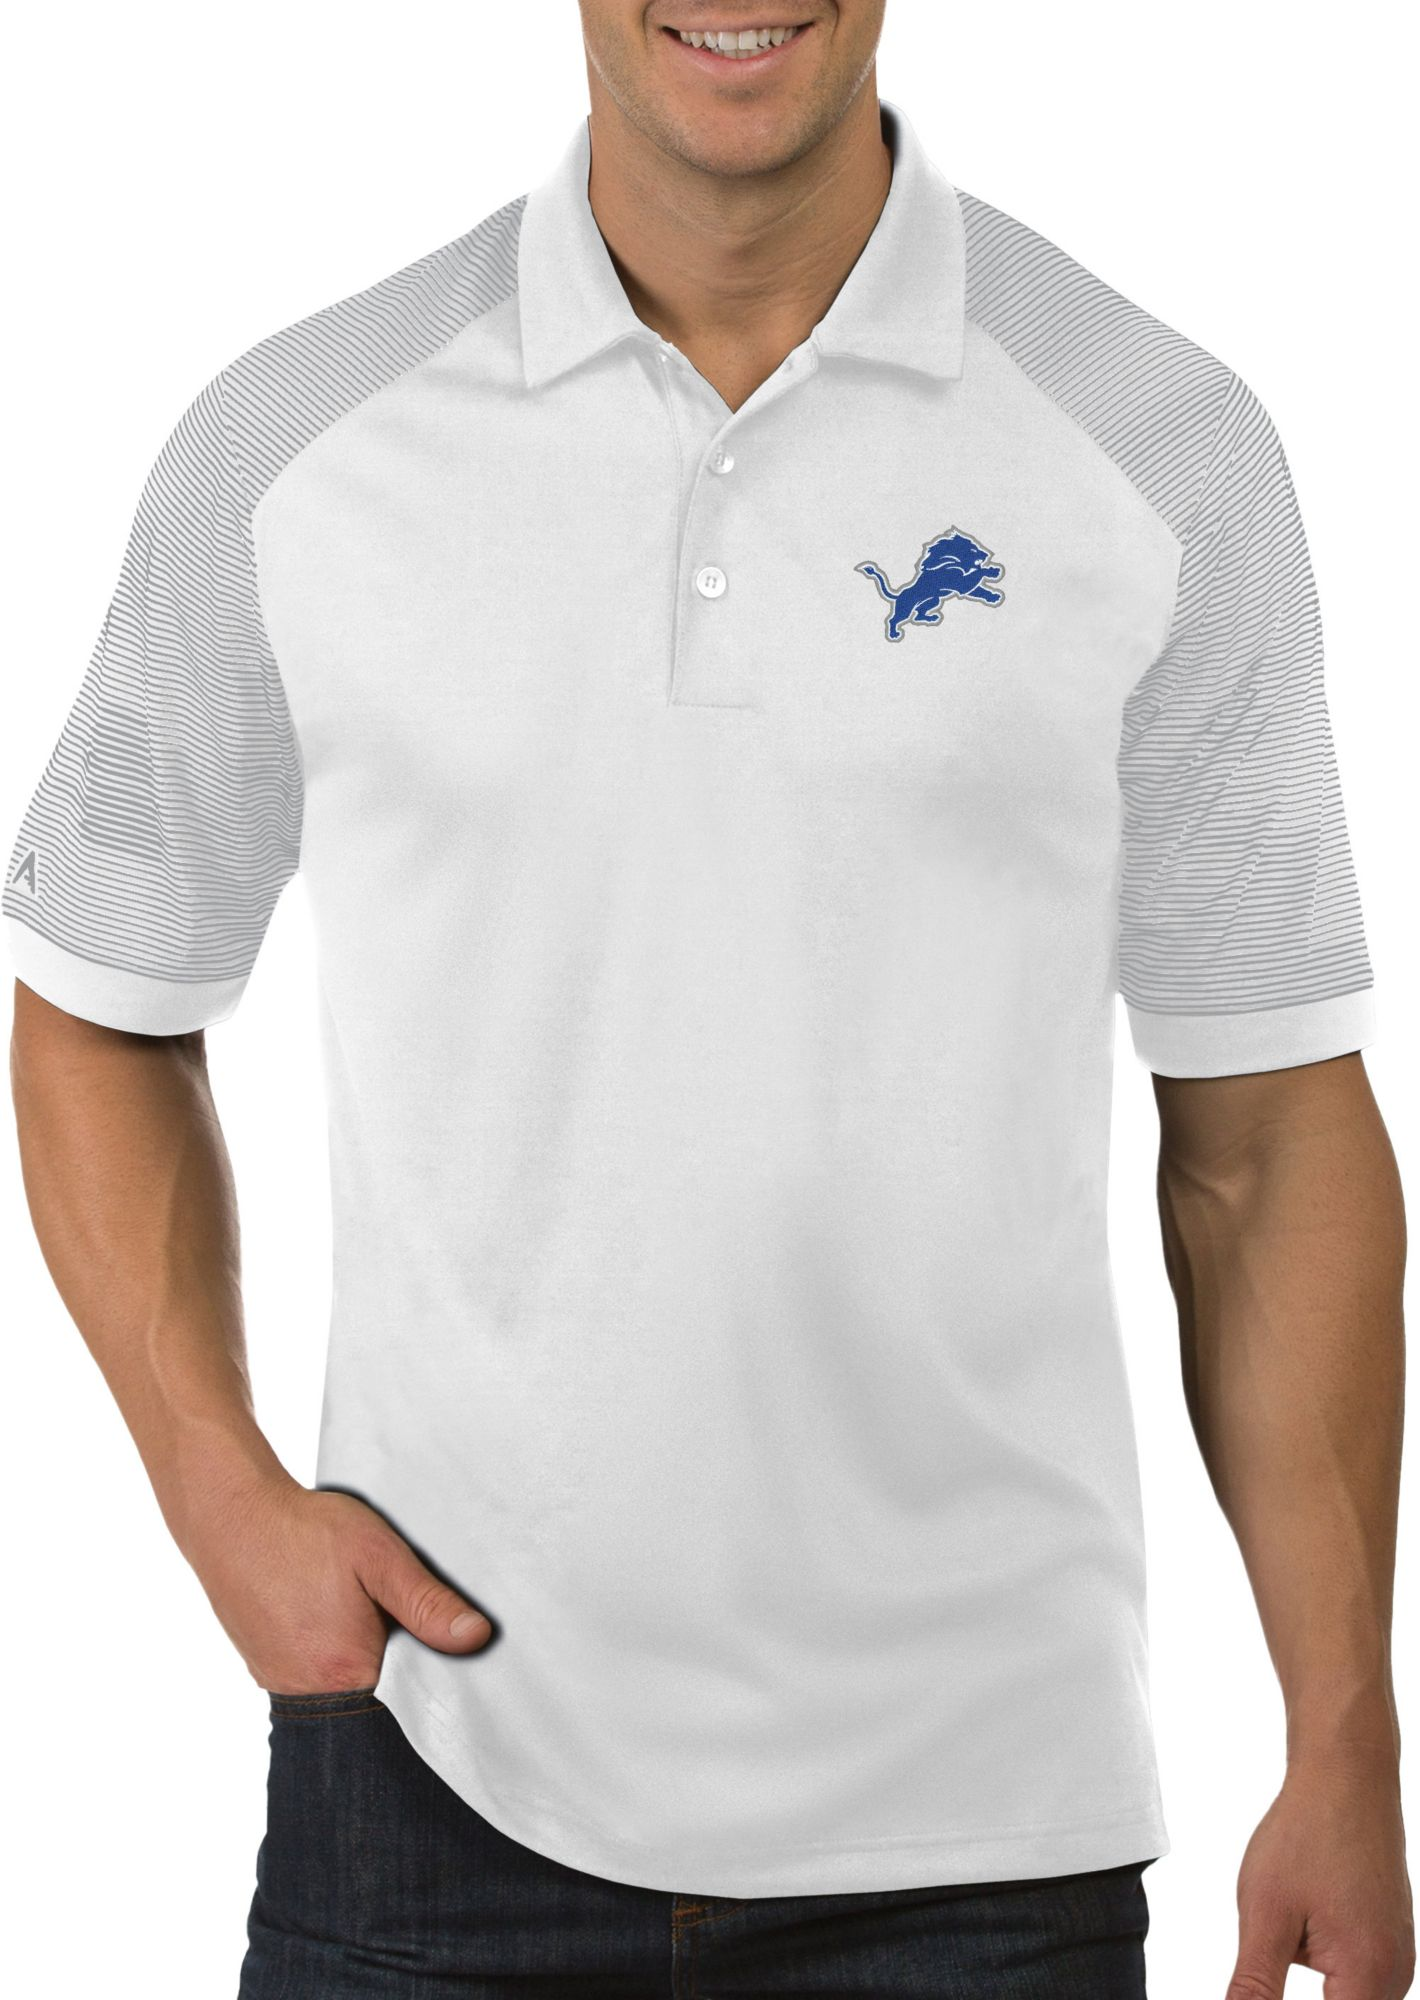 detroit lions polo shirts clearance